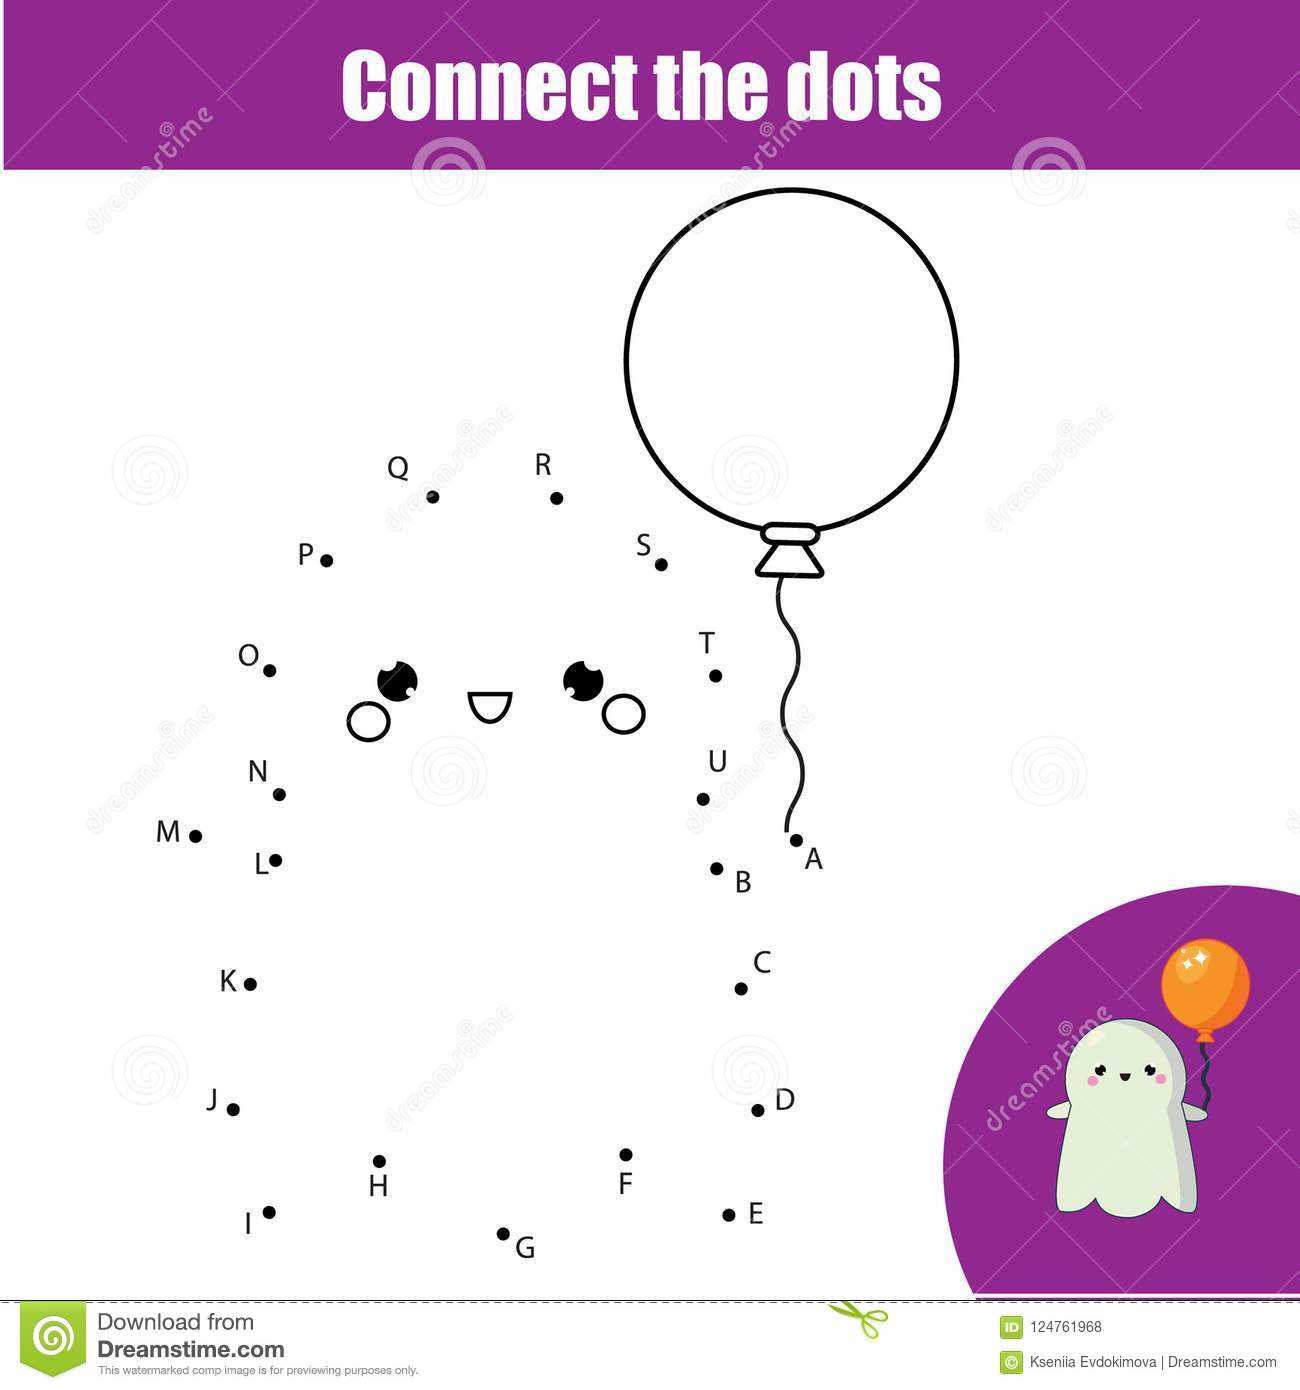 connect the dots by letters children educational game halloween